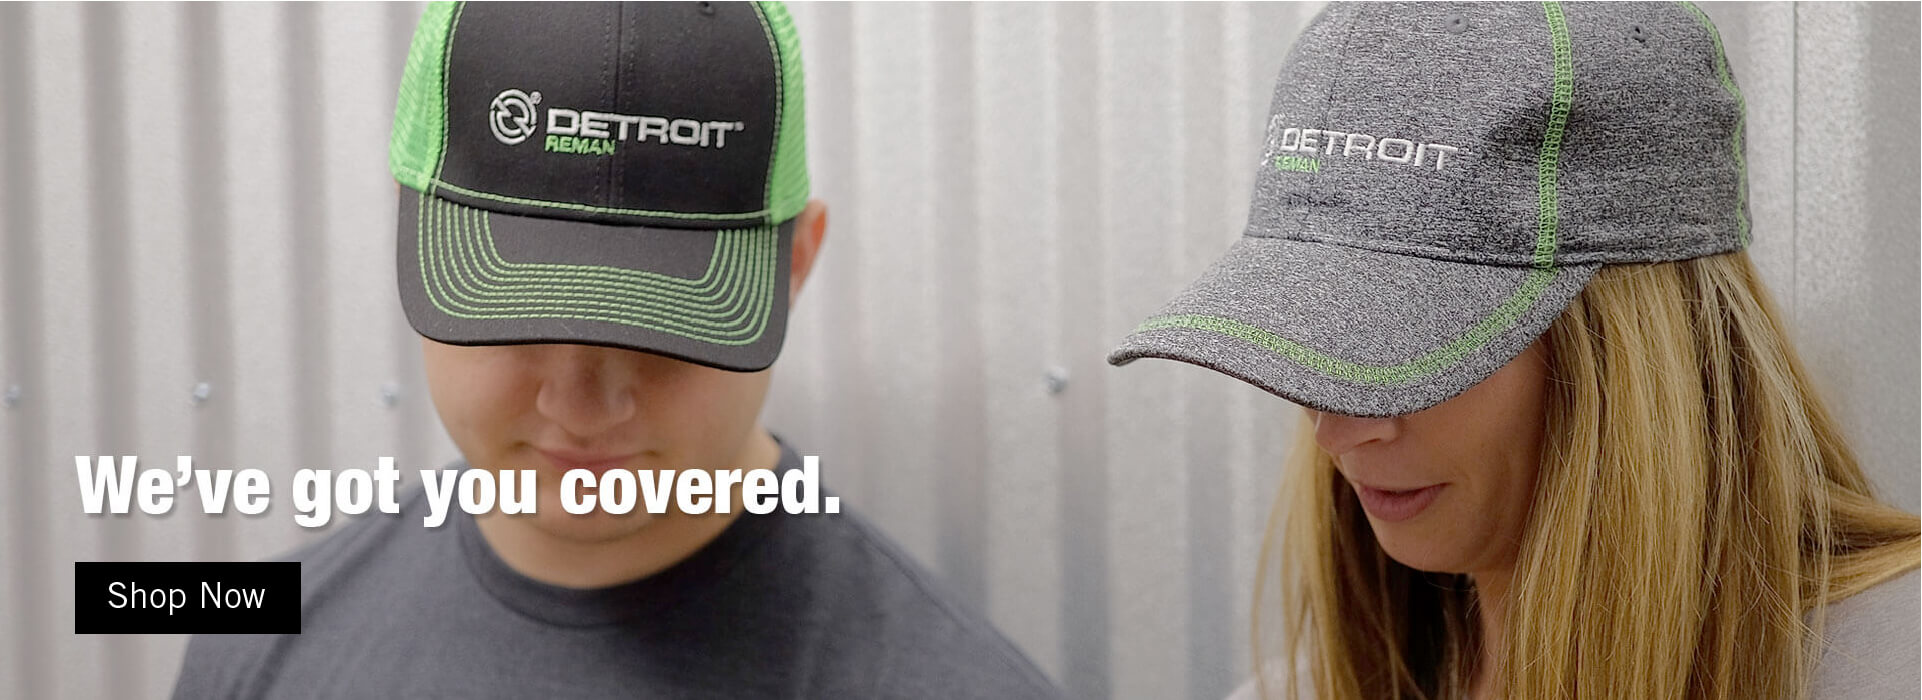 We've got you covered. shop Now.